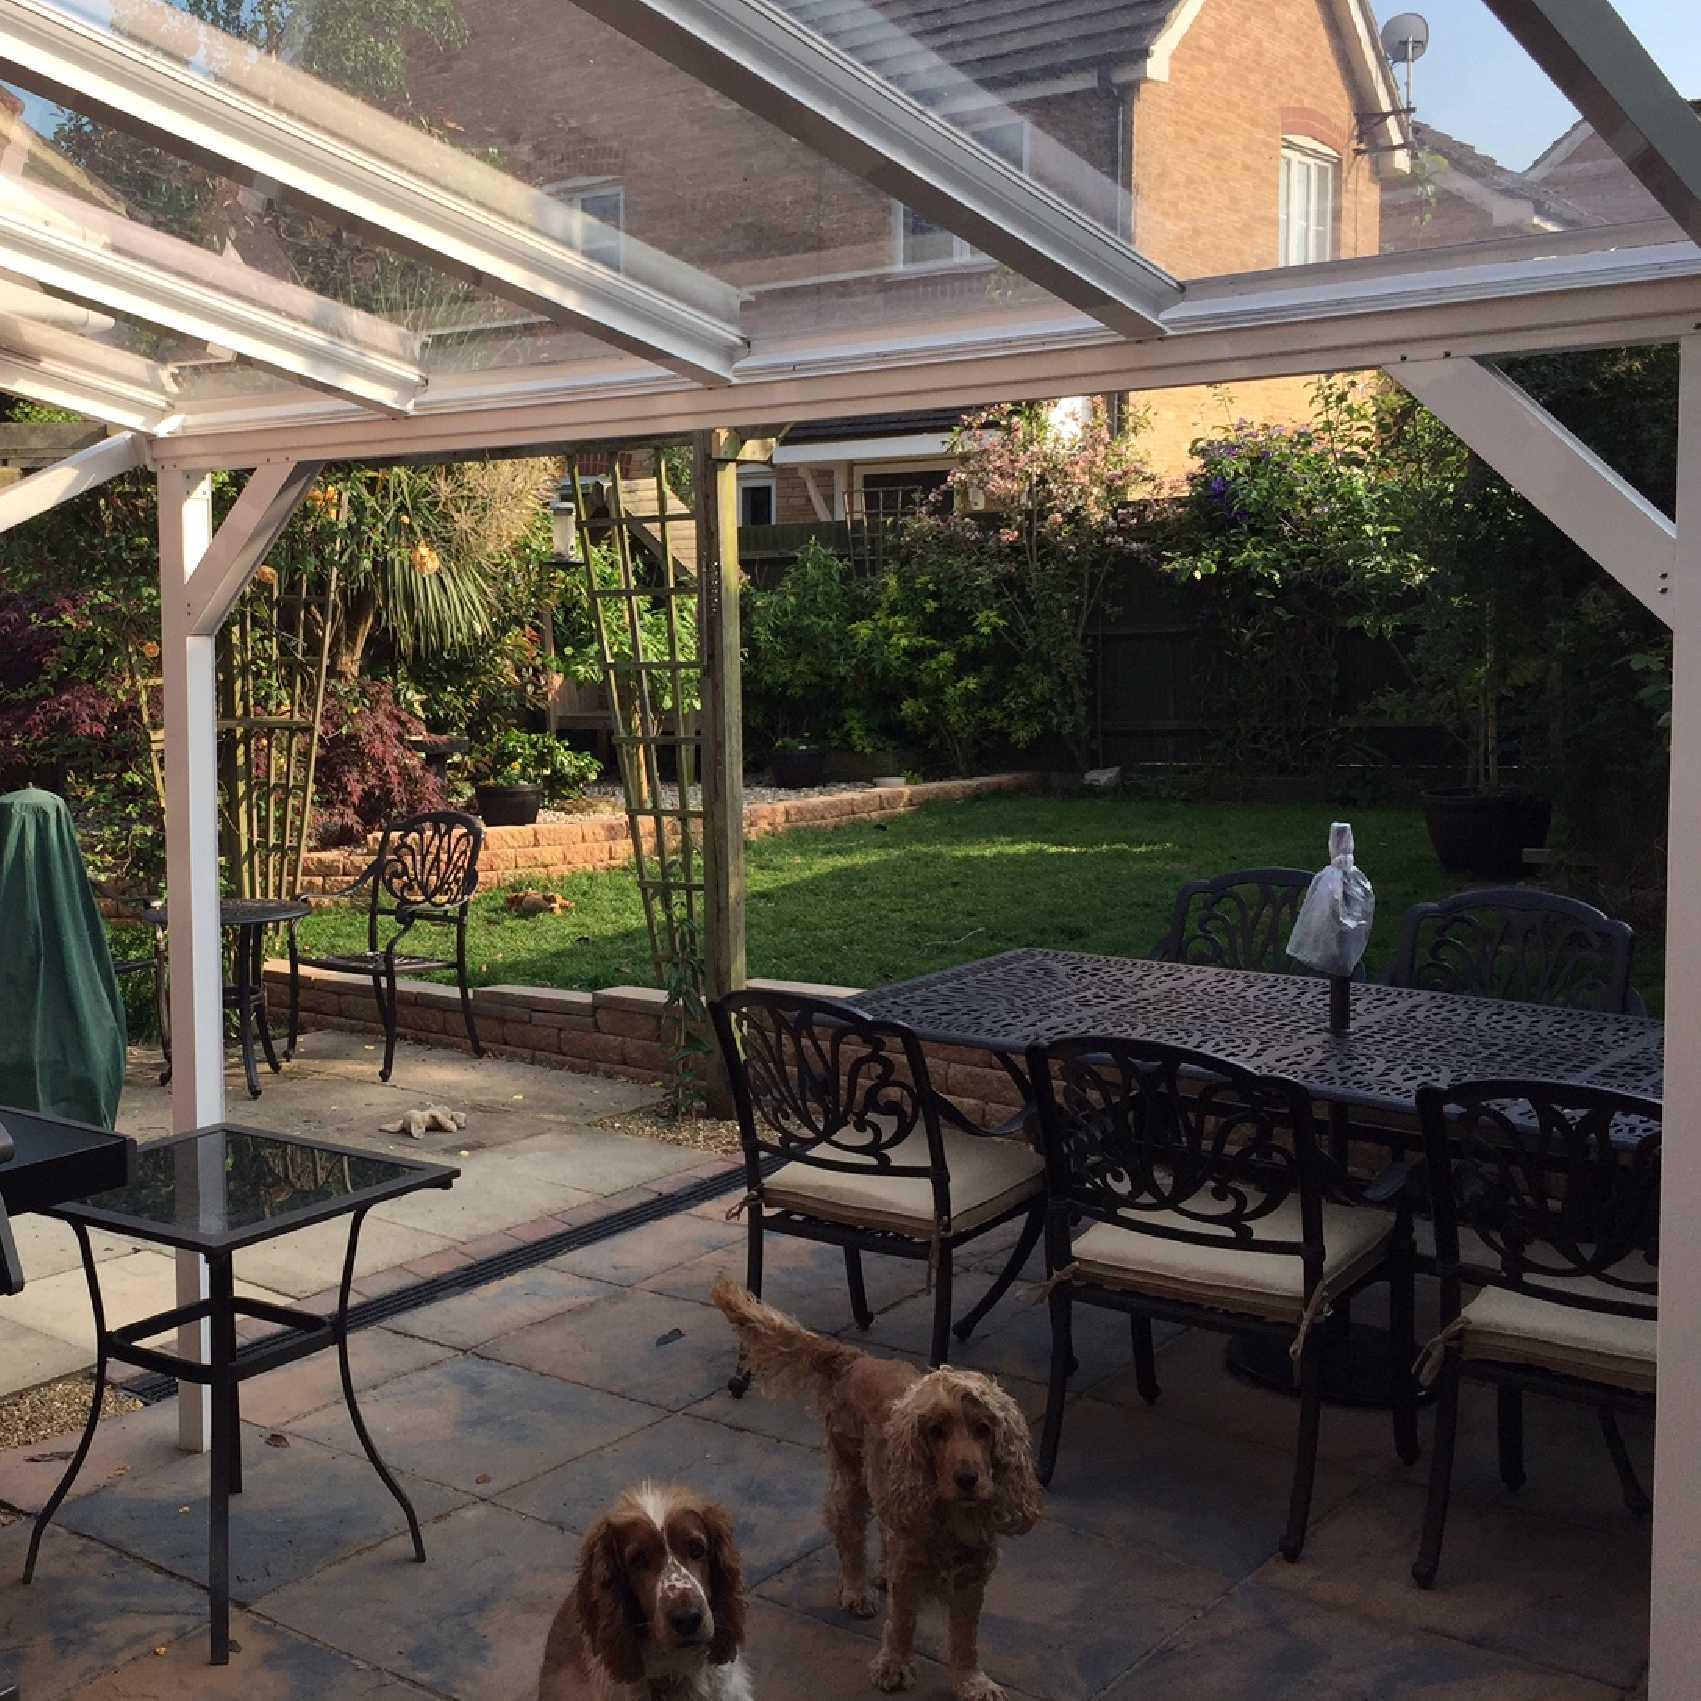 Affordable Omega Smart Lean-To Canopy with 6mm Glass Clear Plate Polycarbonate Glazing - 4.9m (W) x 2.0m (P), (3) Supporting Posts